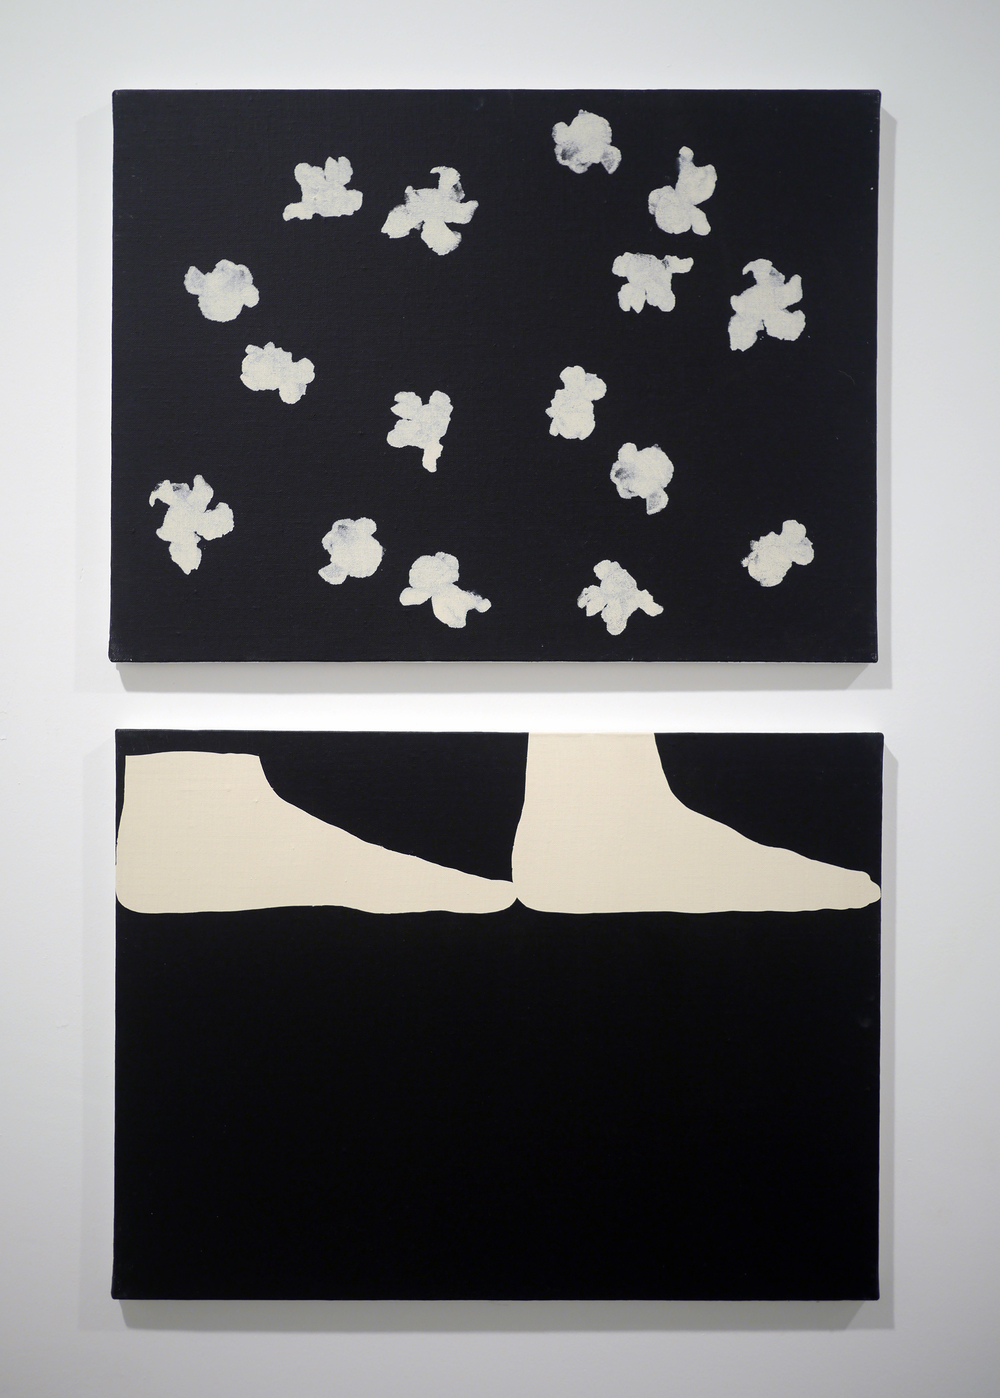 from top.   Popcorn Noise II . Acrylic on canvas. 18 x 24 inches. 2013.   Two Feet . Acrylic on canvas. 18 x 24 inches. 2013.